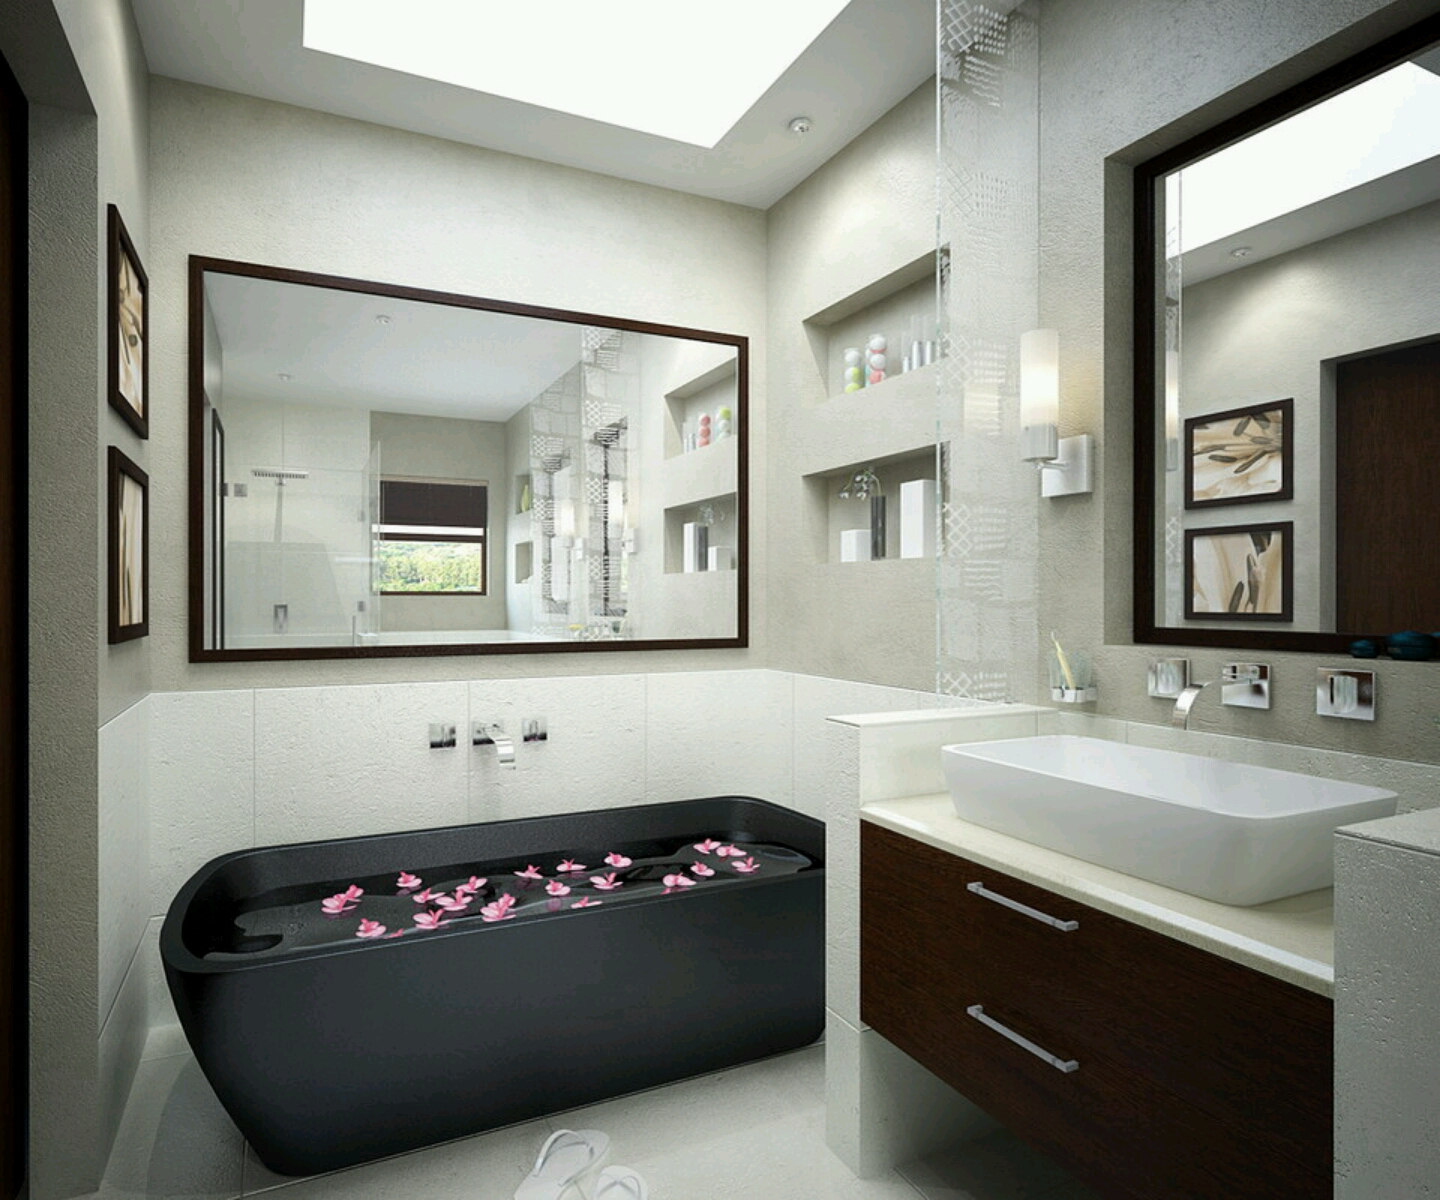 Modern bathrooms cabinets designs furniture gallery for New bathroom design ideas